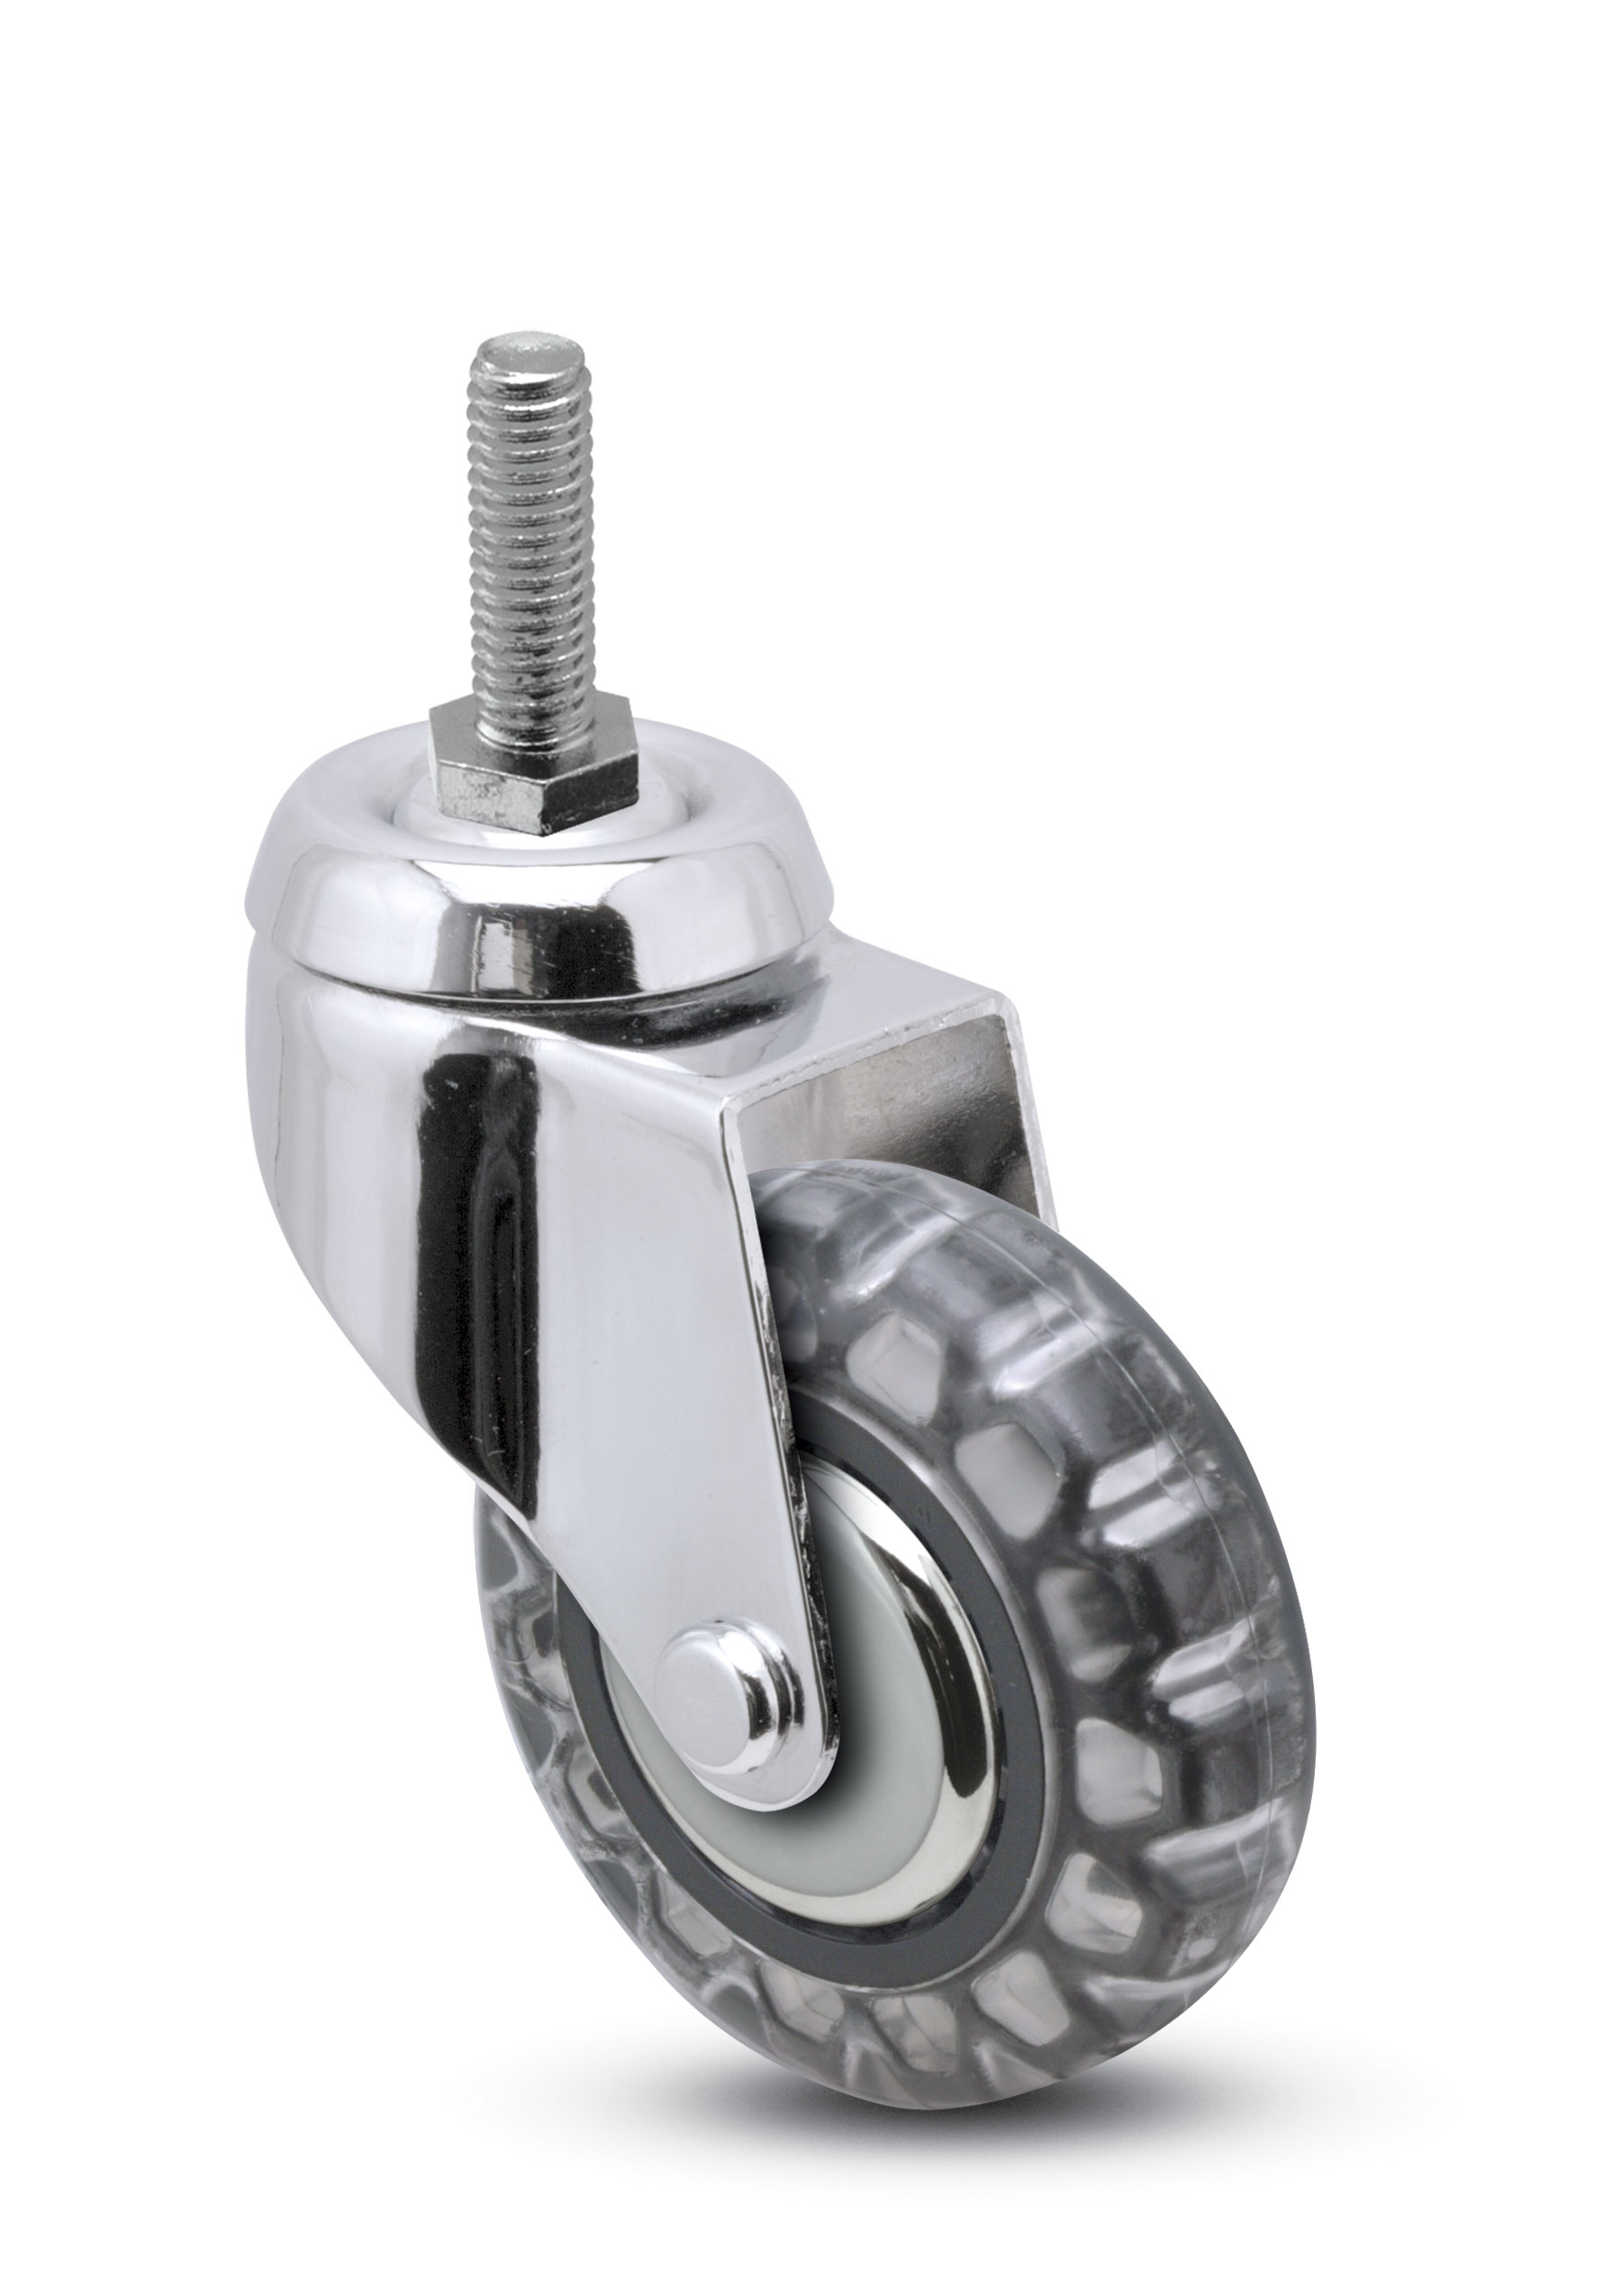 Industrial Casters Heavy Duty Casters